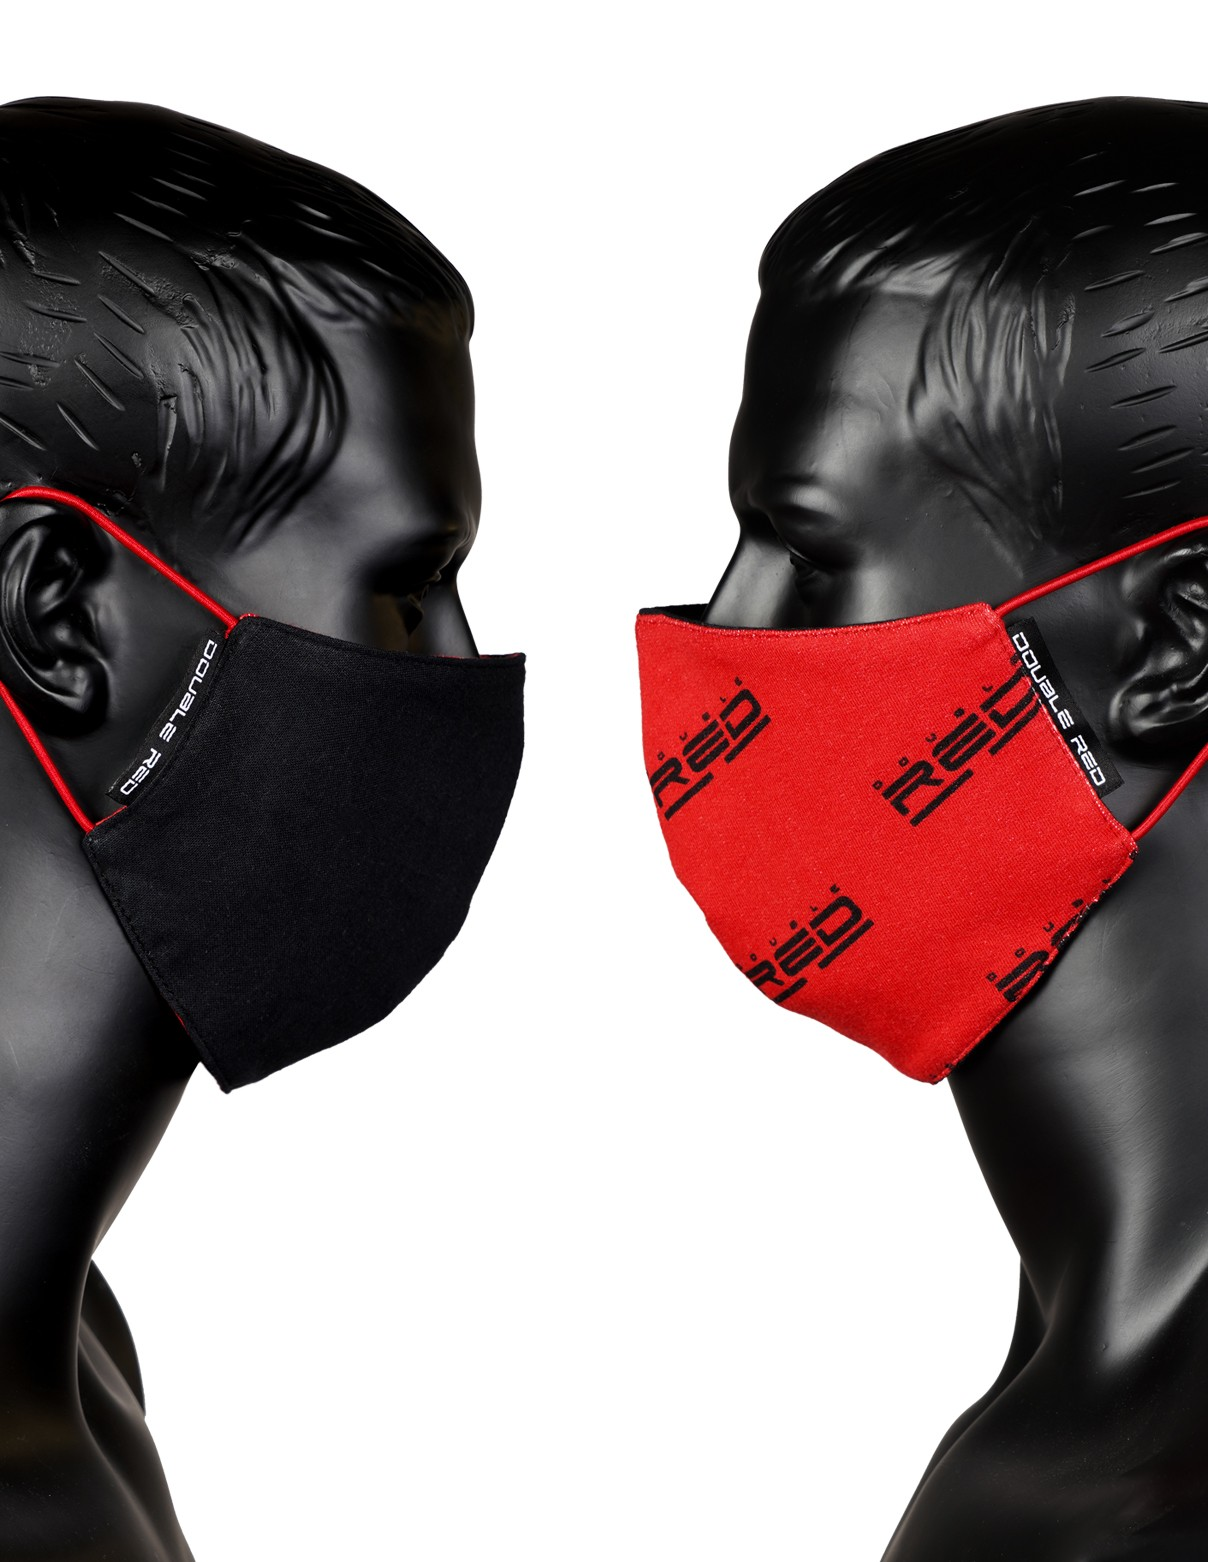 REDLIVE RESCUER DOUBLE FACE Red/Black